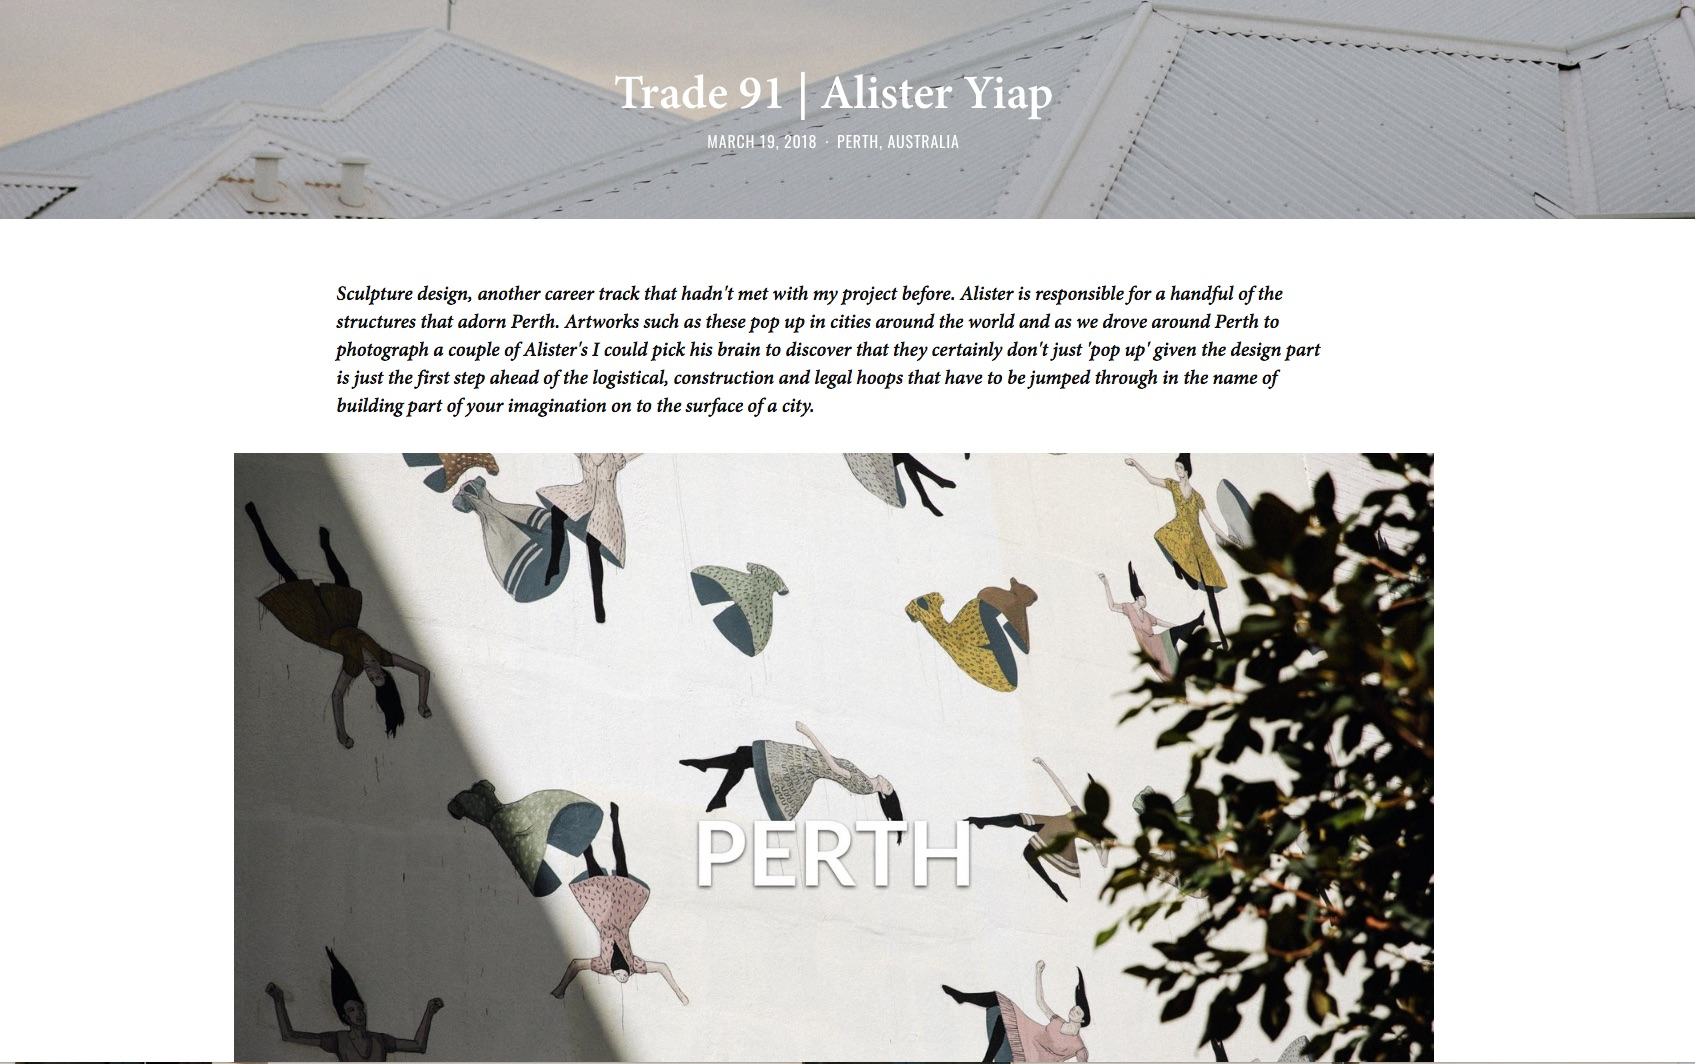 Trade 91 | Alister Yiap by Richard Tilney-Bassett from The Glass Passport